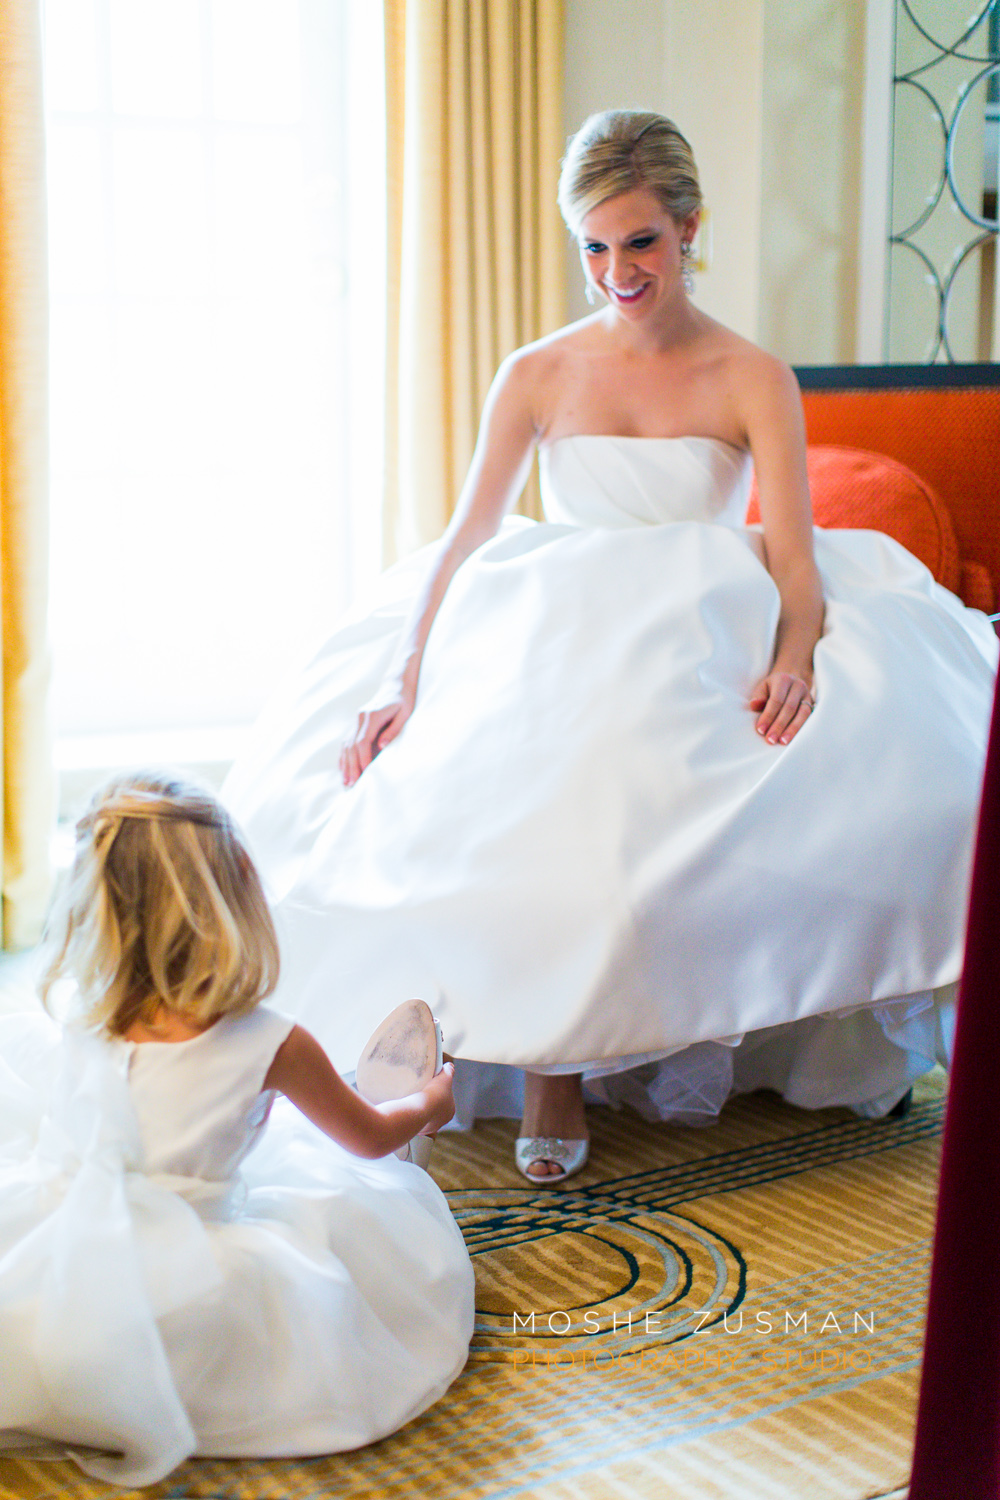 DC_Wedding_Photographer_Moshe_Zusman_Mayflower_Renaissance Washington-19.jpg